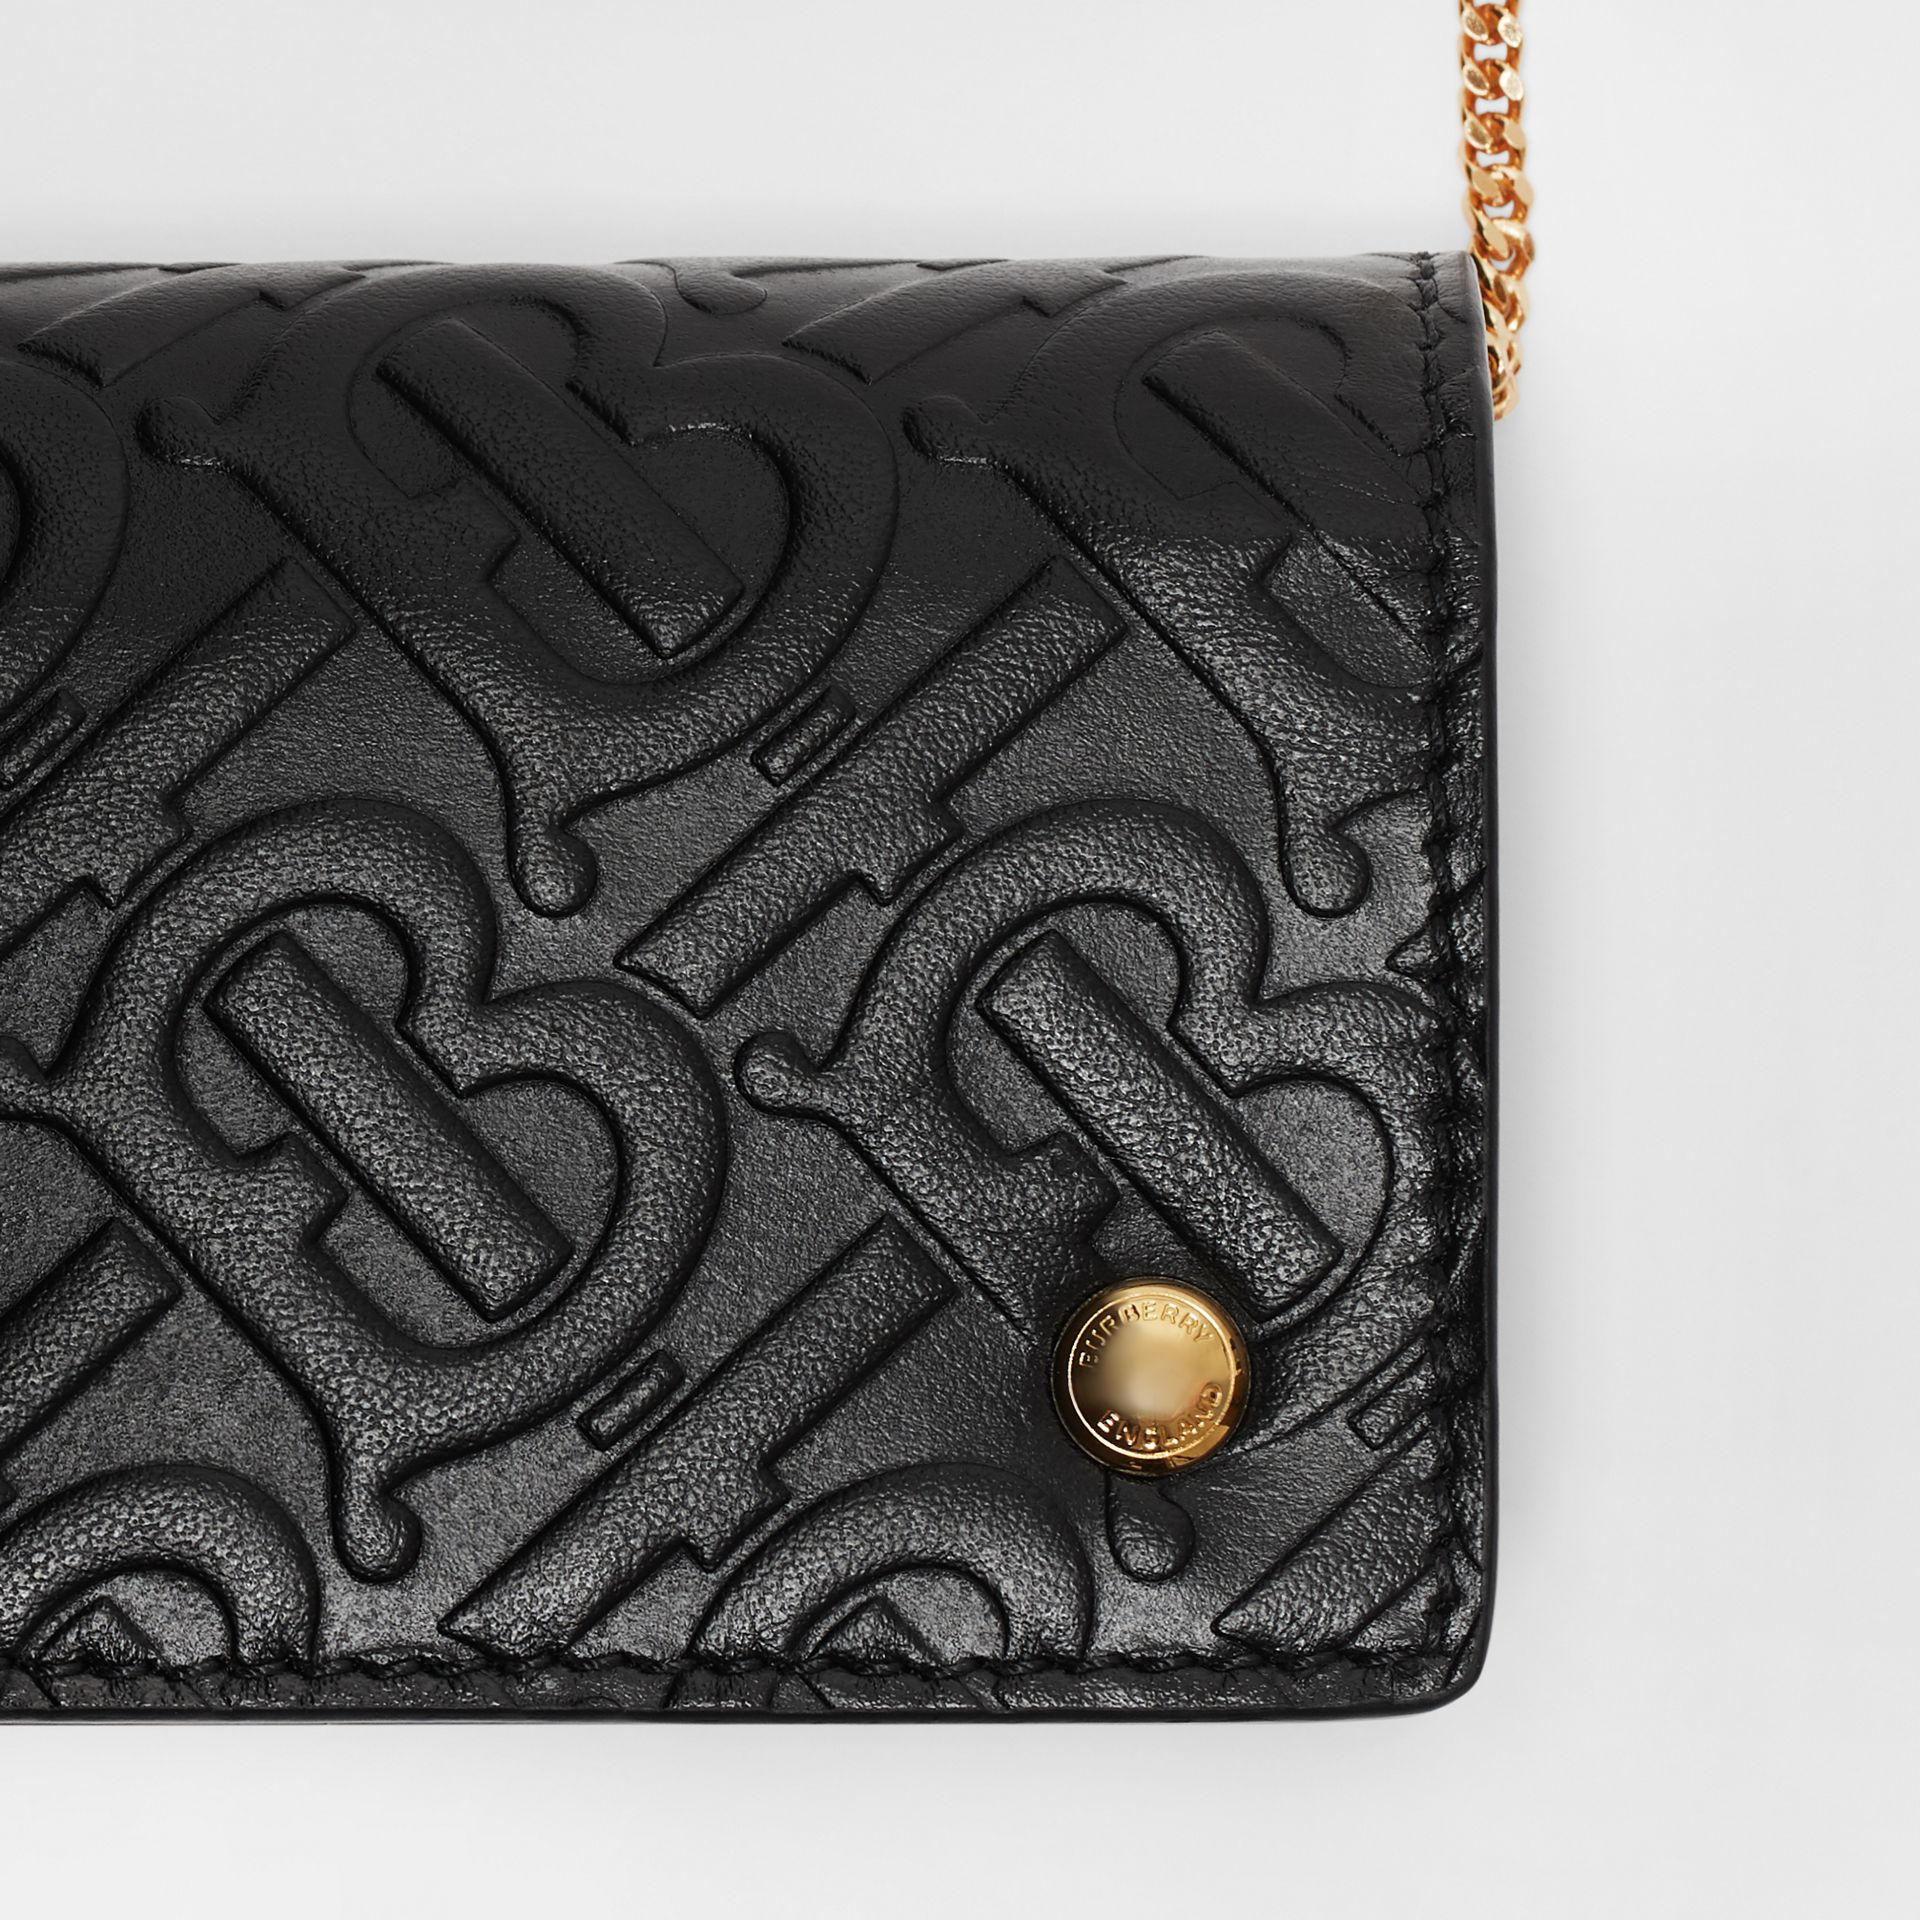 Monogram Leather Card Case with Detachable Strap in Black - Women | Burberry United States - gallery image 6